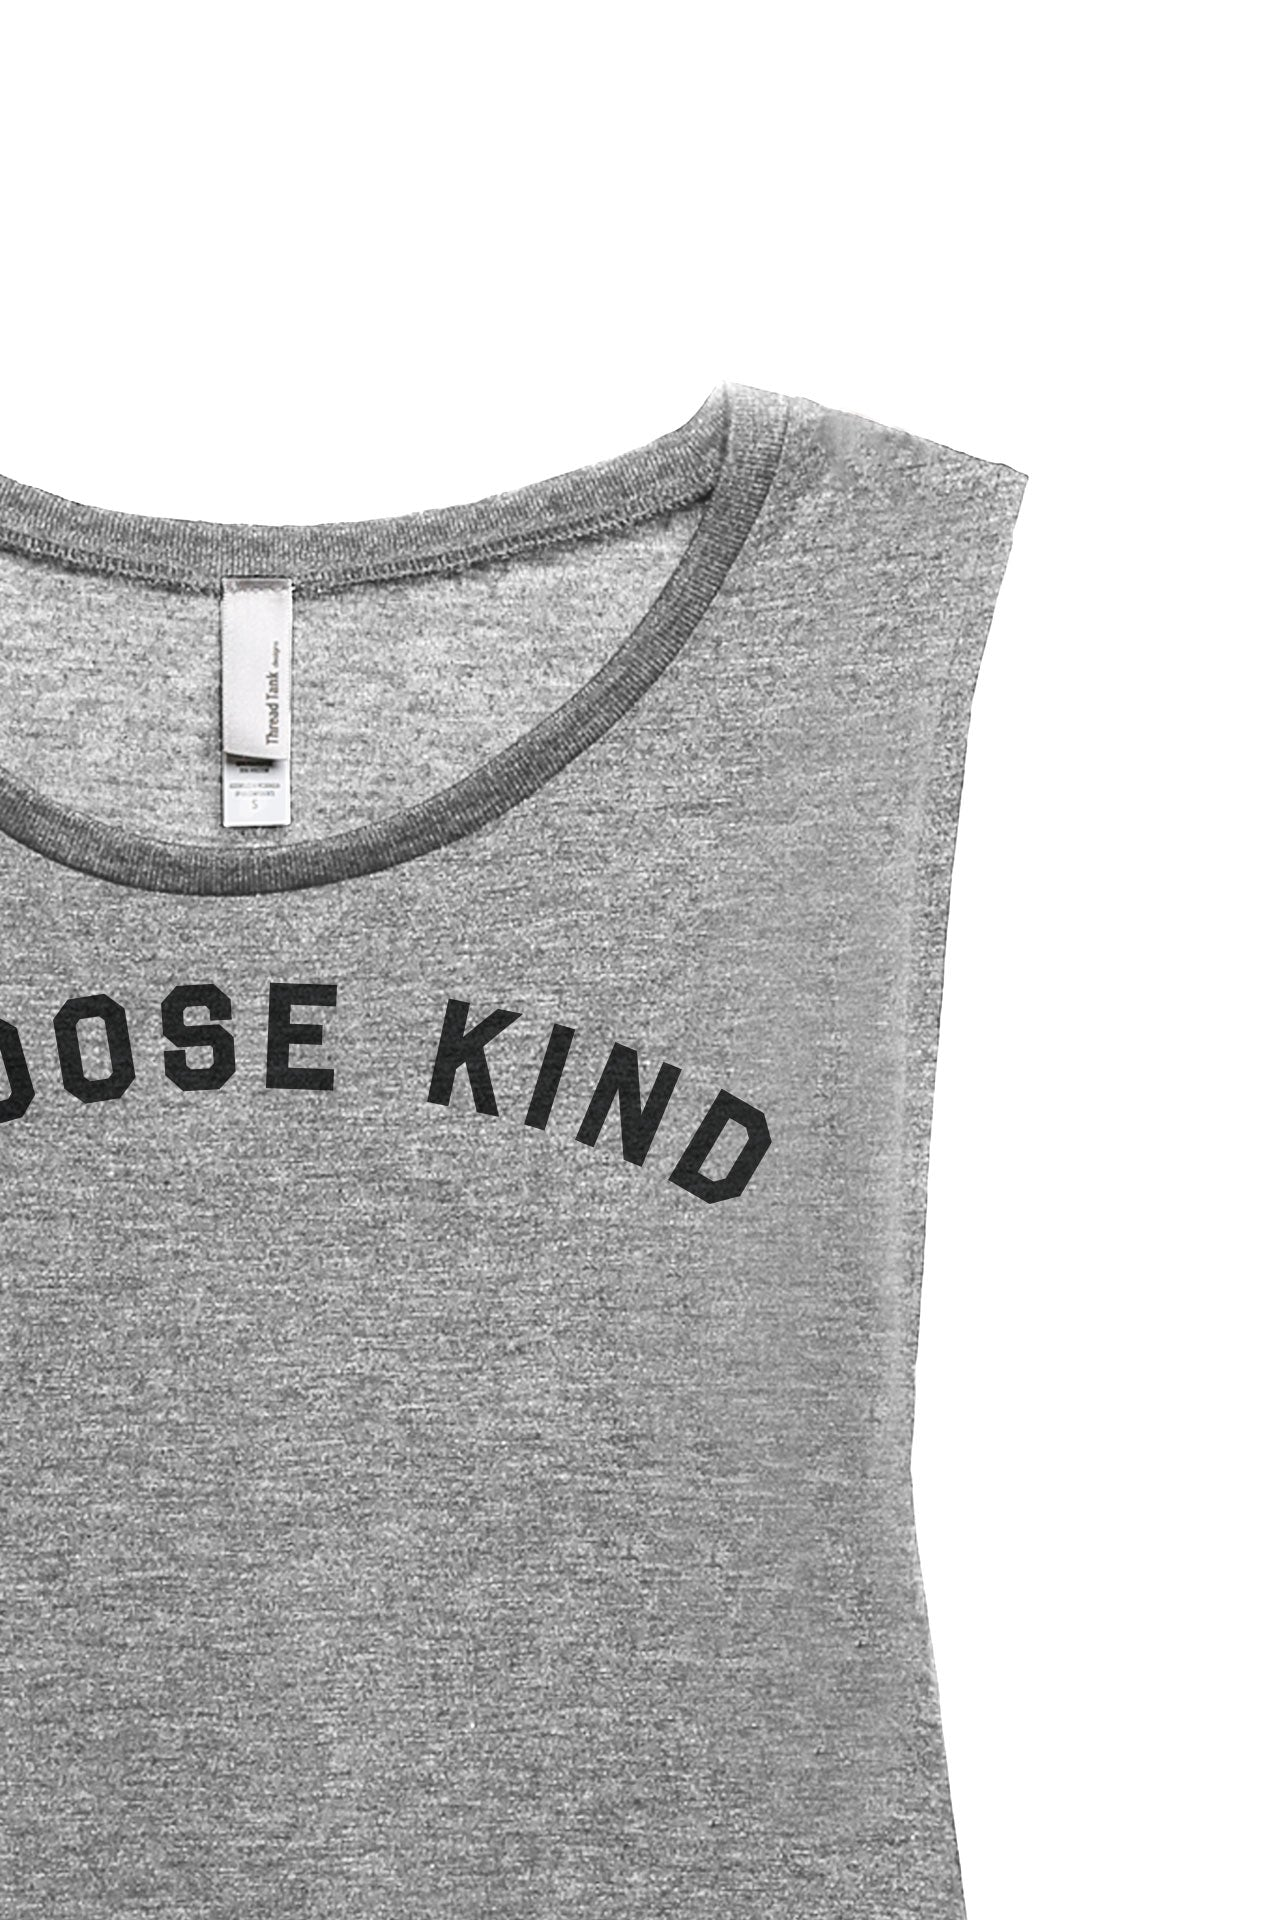 Choose Kind Women's Relaxed Muscle Tank Tee Heather Grey